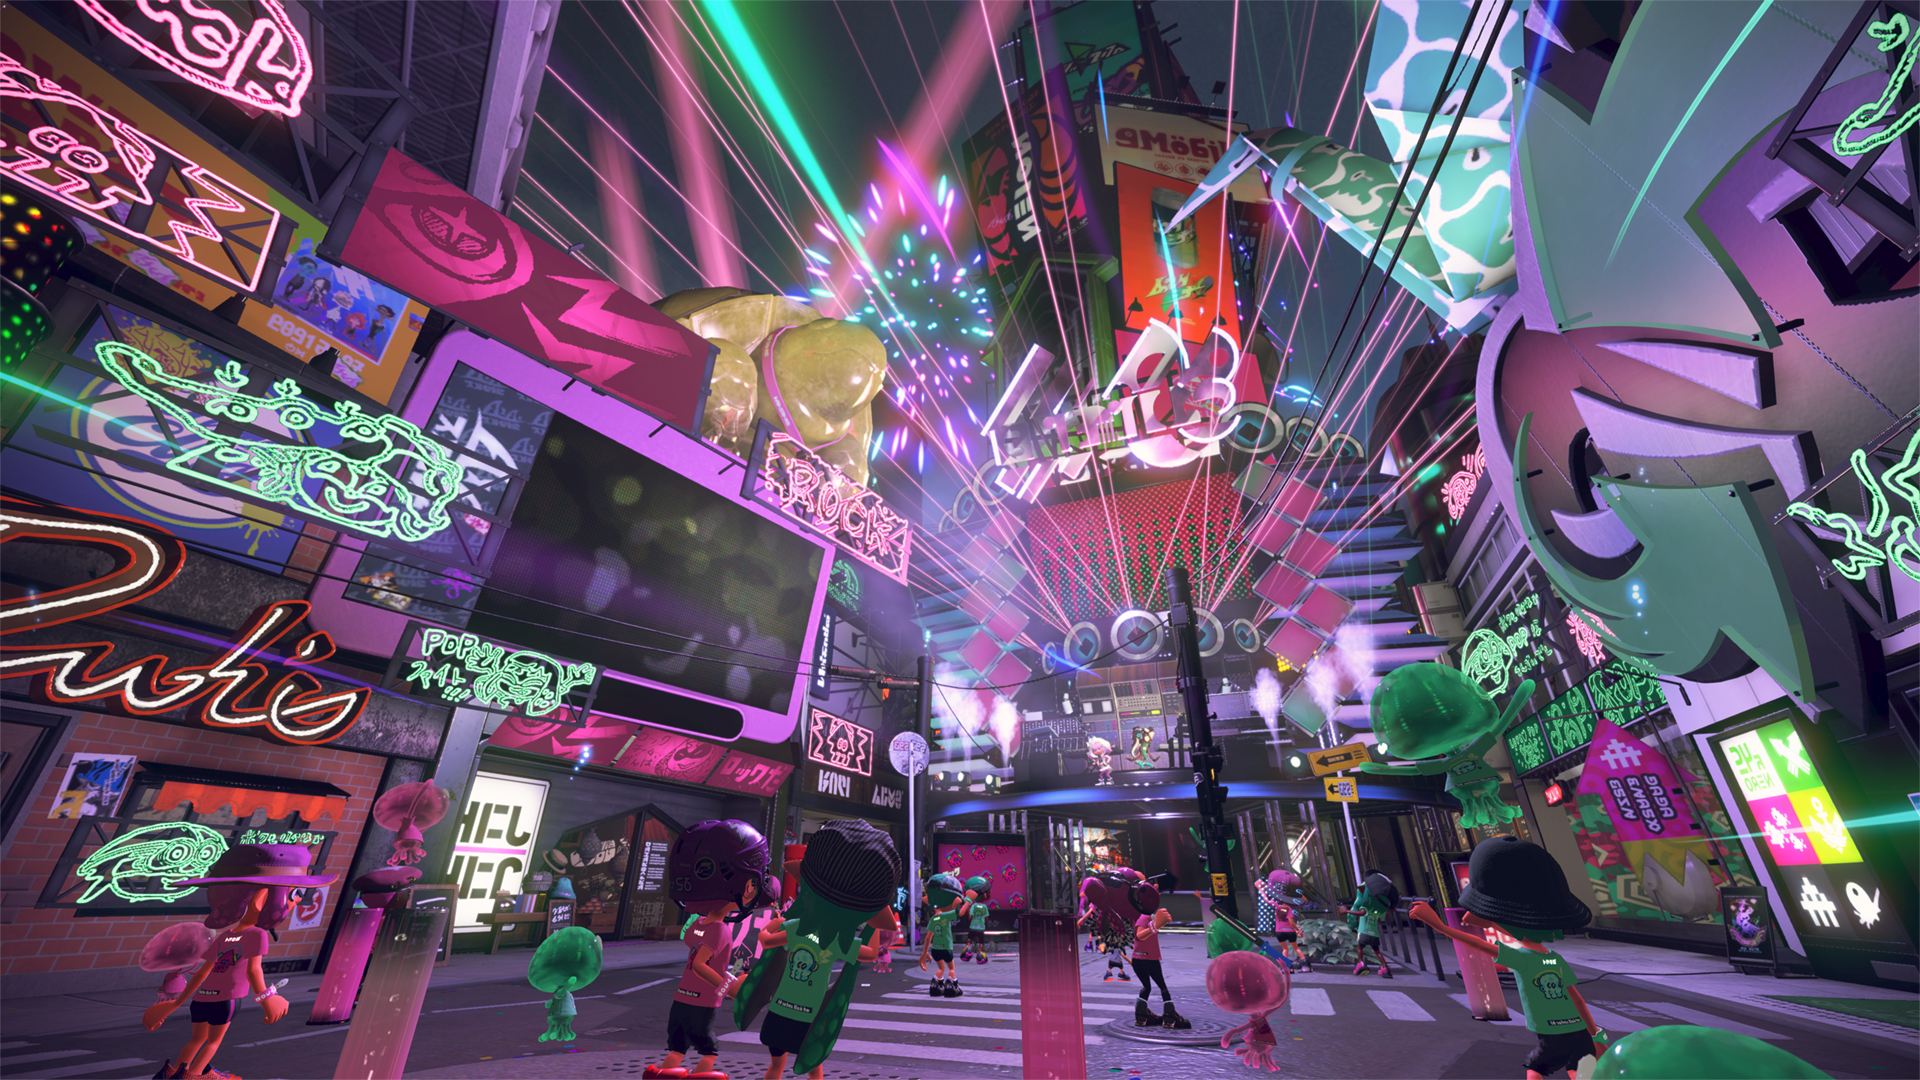 japan splatoon 2 sells over 670k copies in its first 3 days